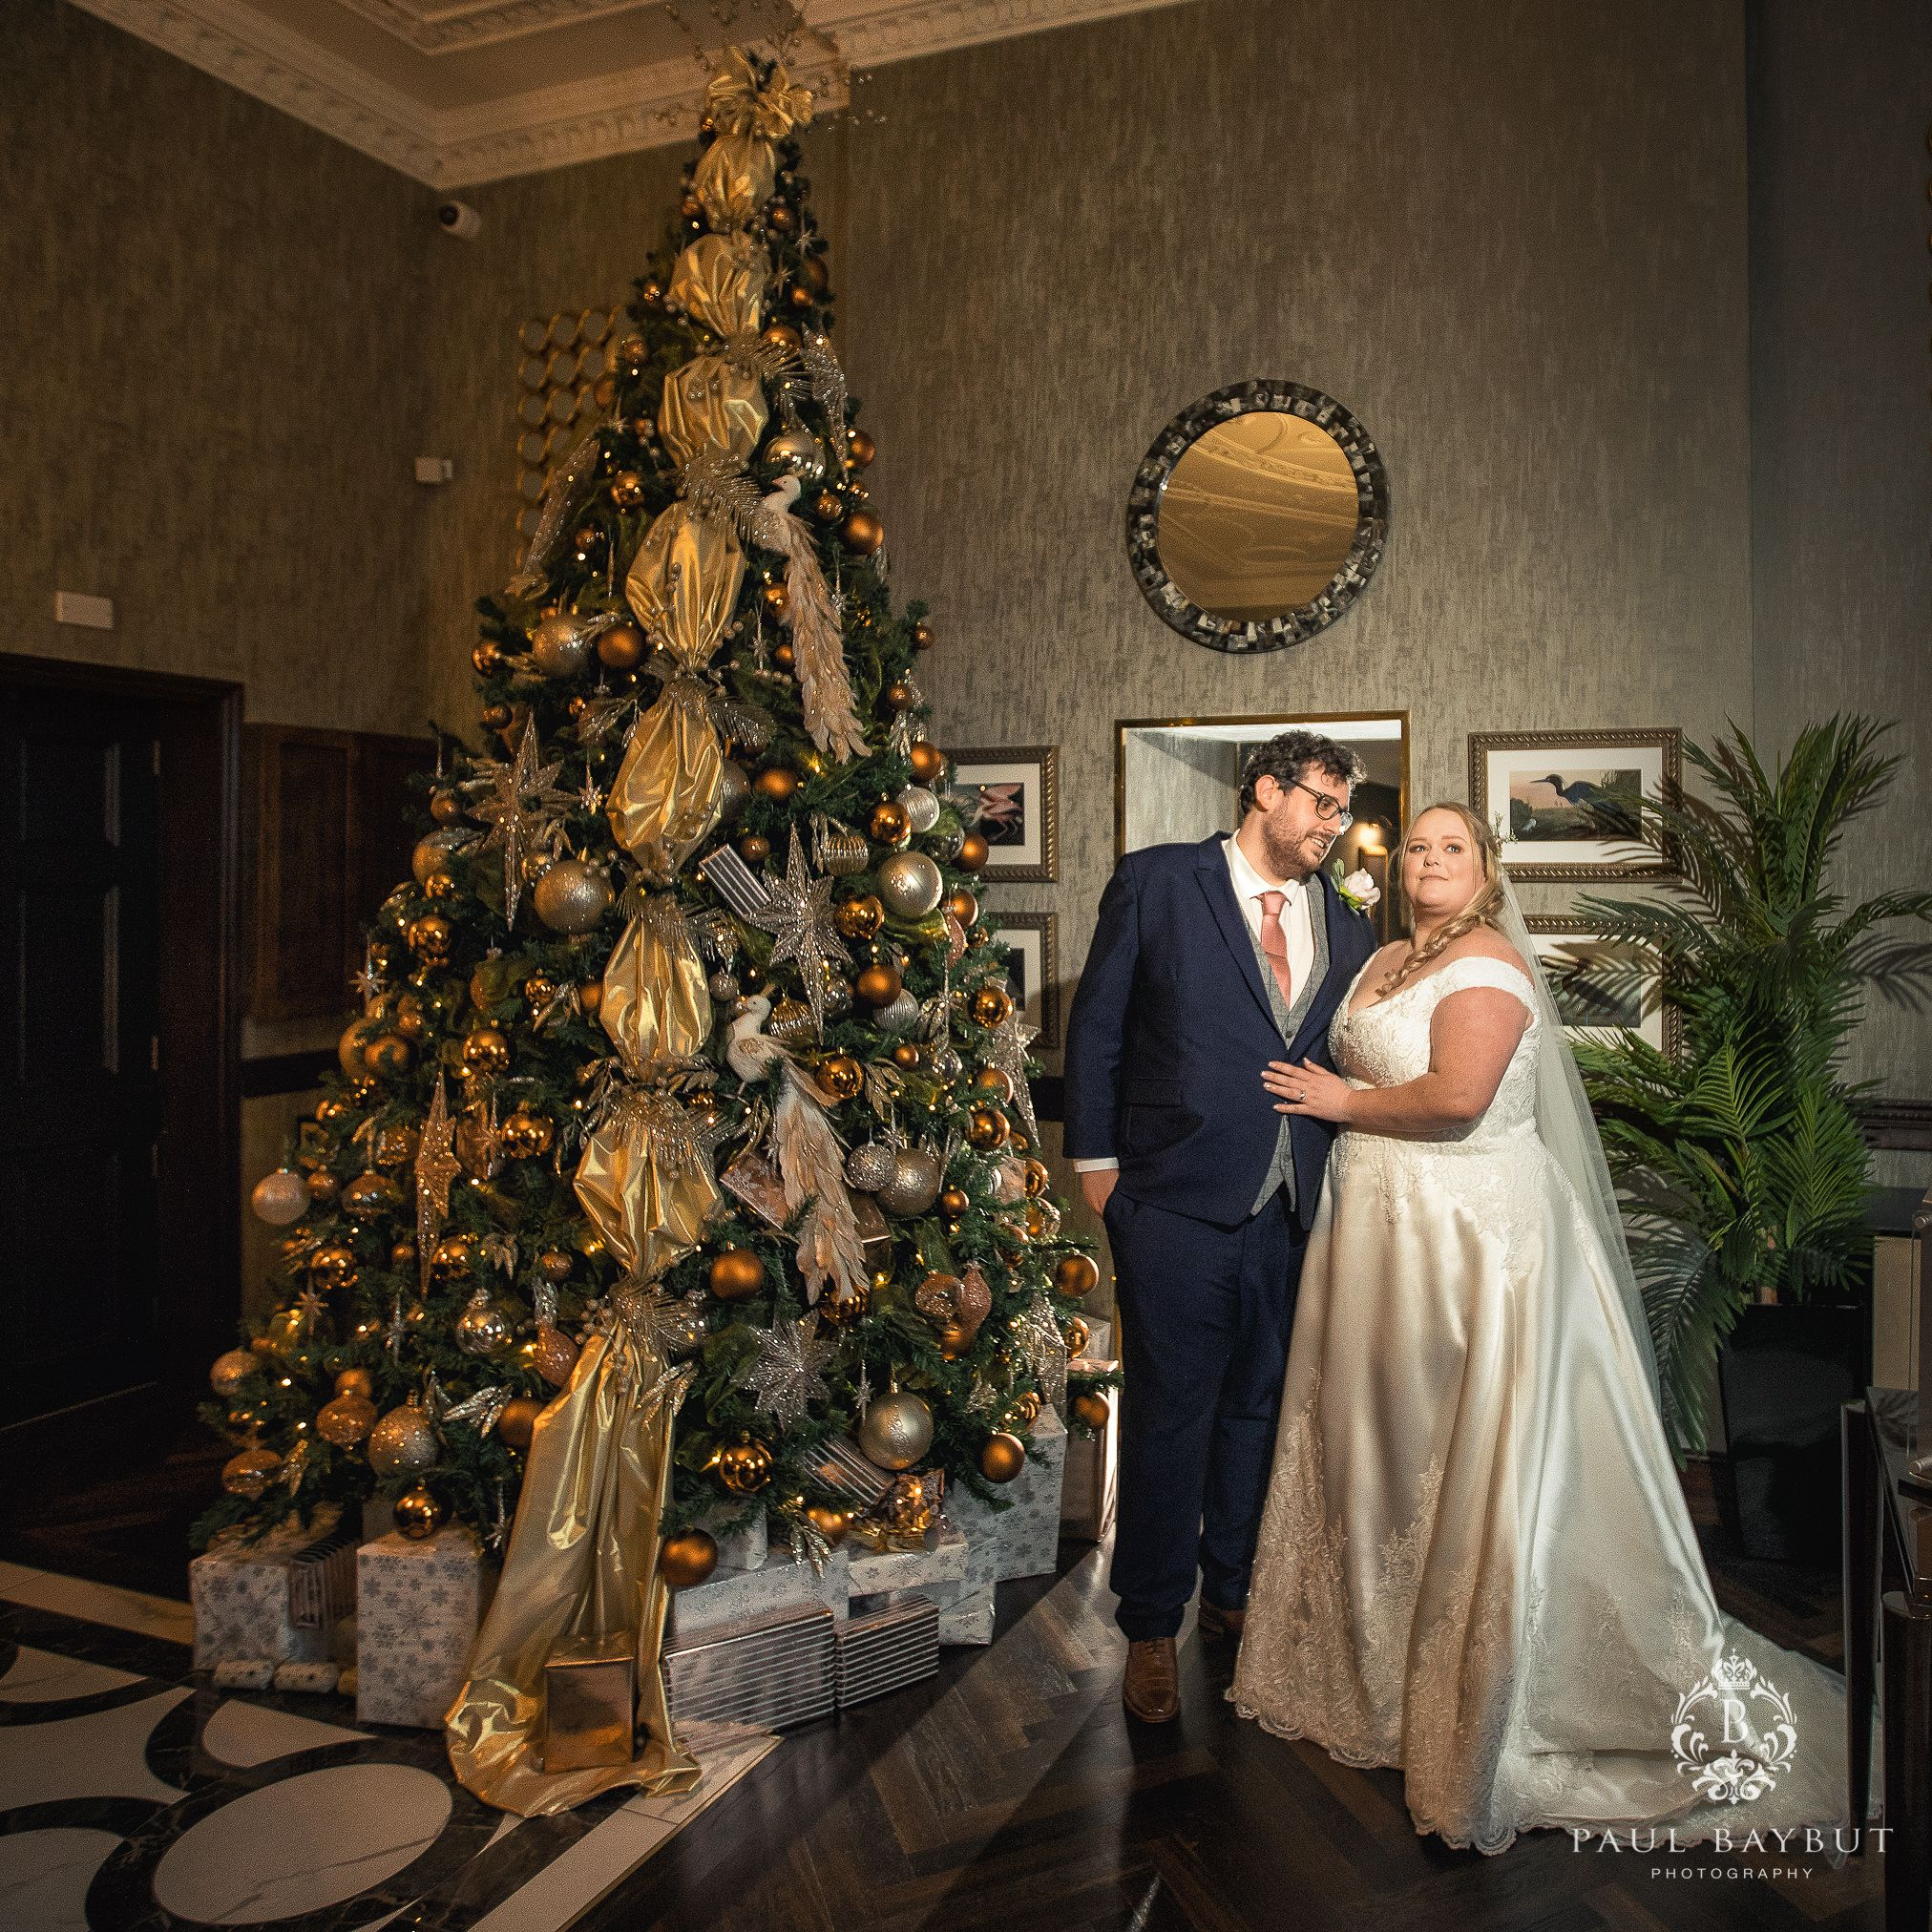 Mottram hall wedding photographer Christmas micro wedding with bride and groom at the Festive tree in reception area